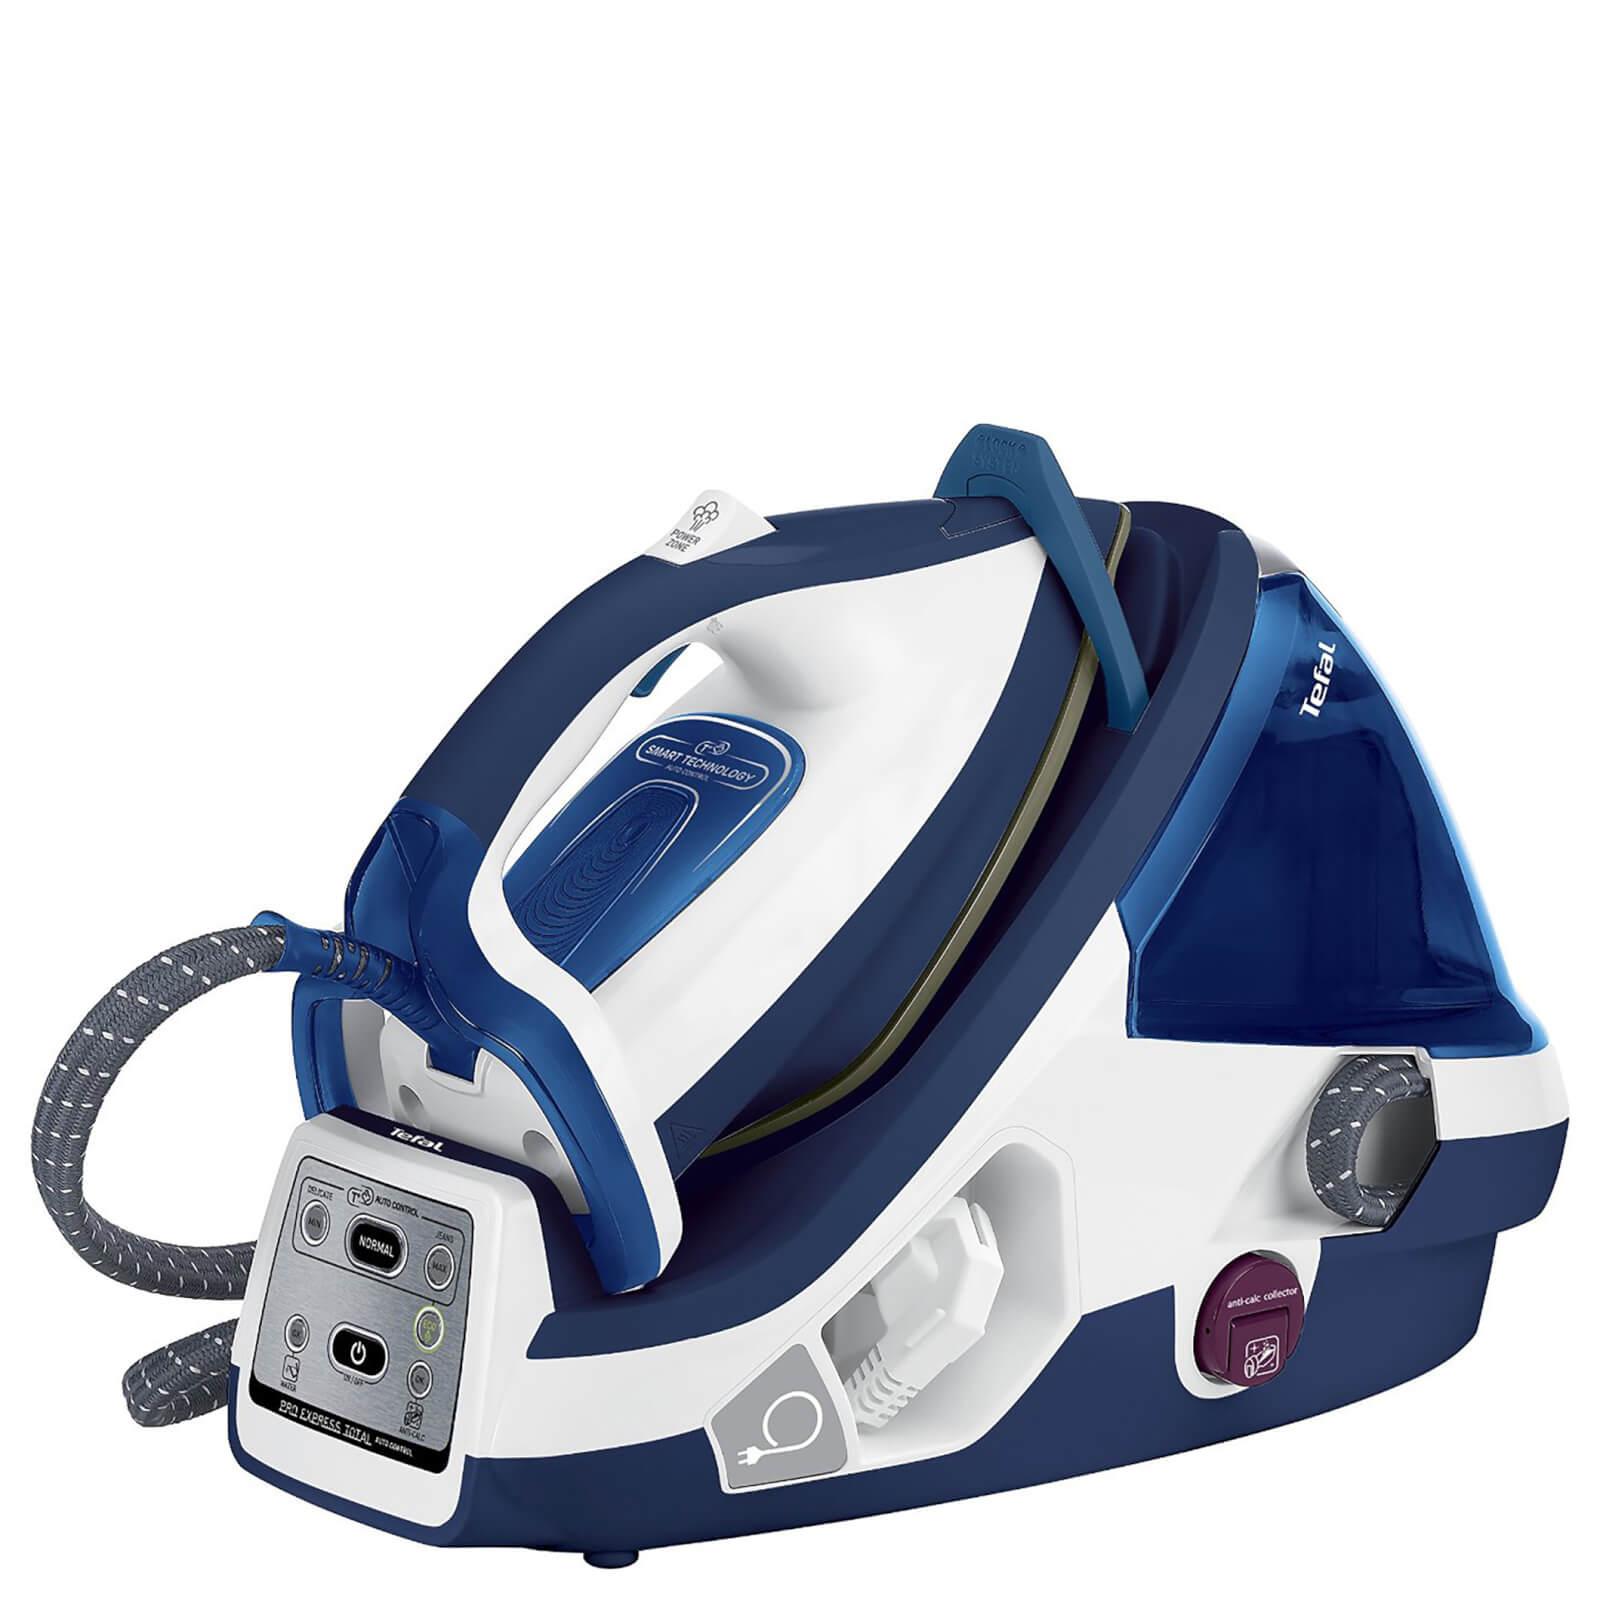 Tefal GV8962 Pro Express Total Iron - Blue